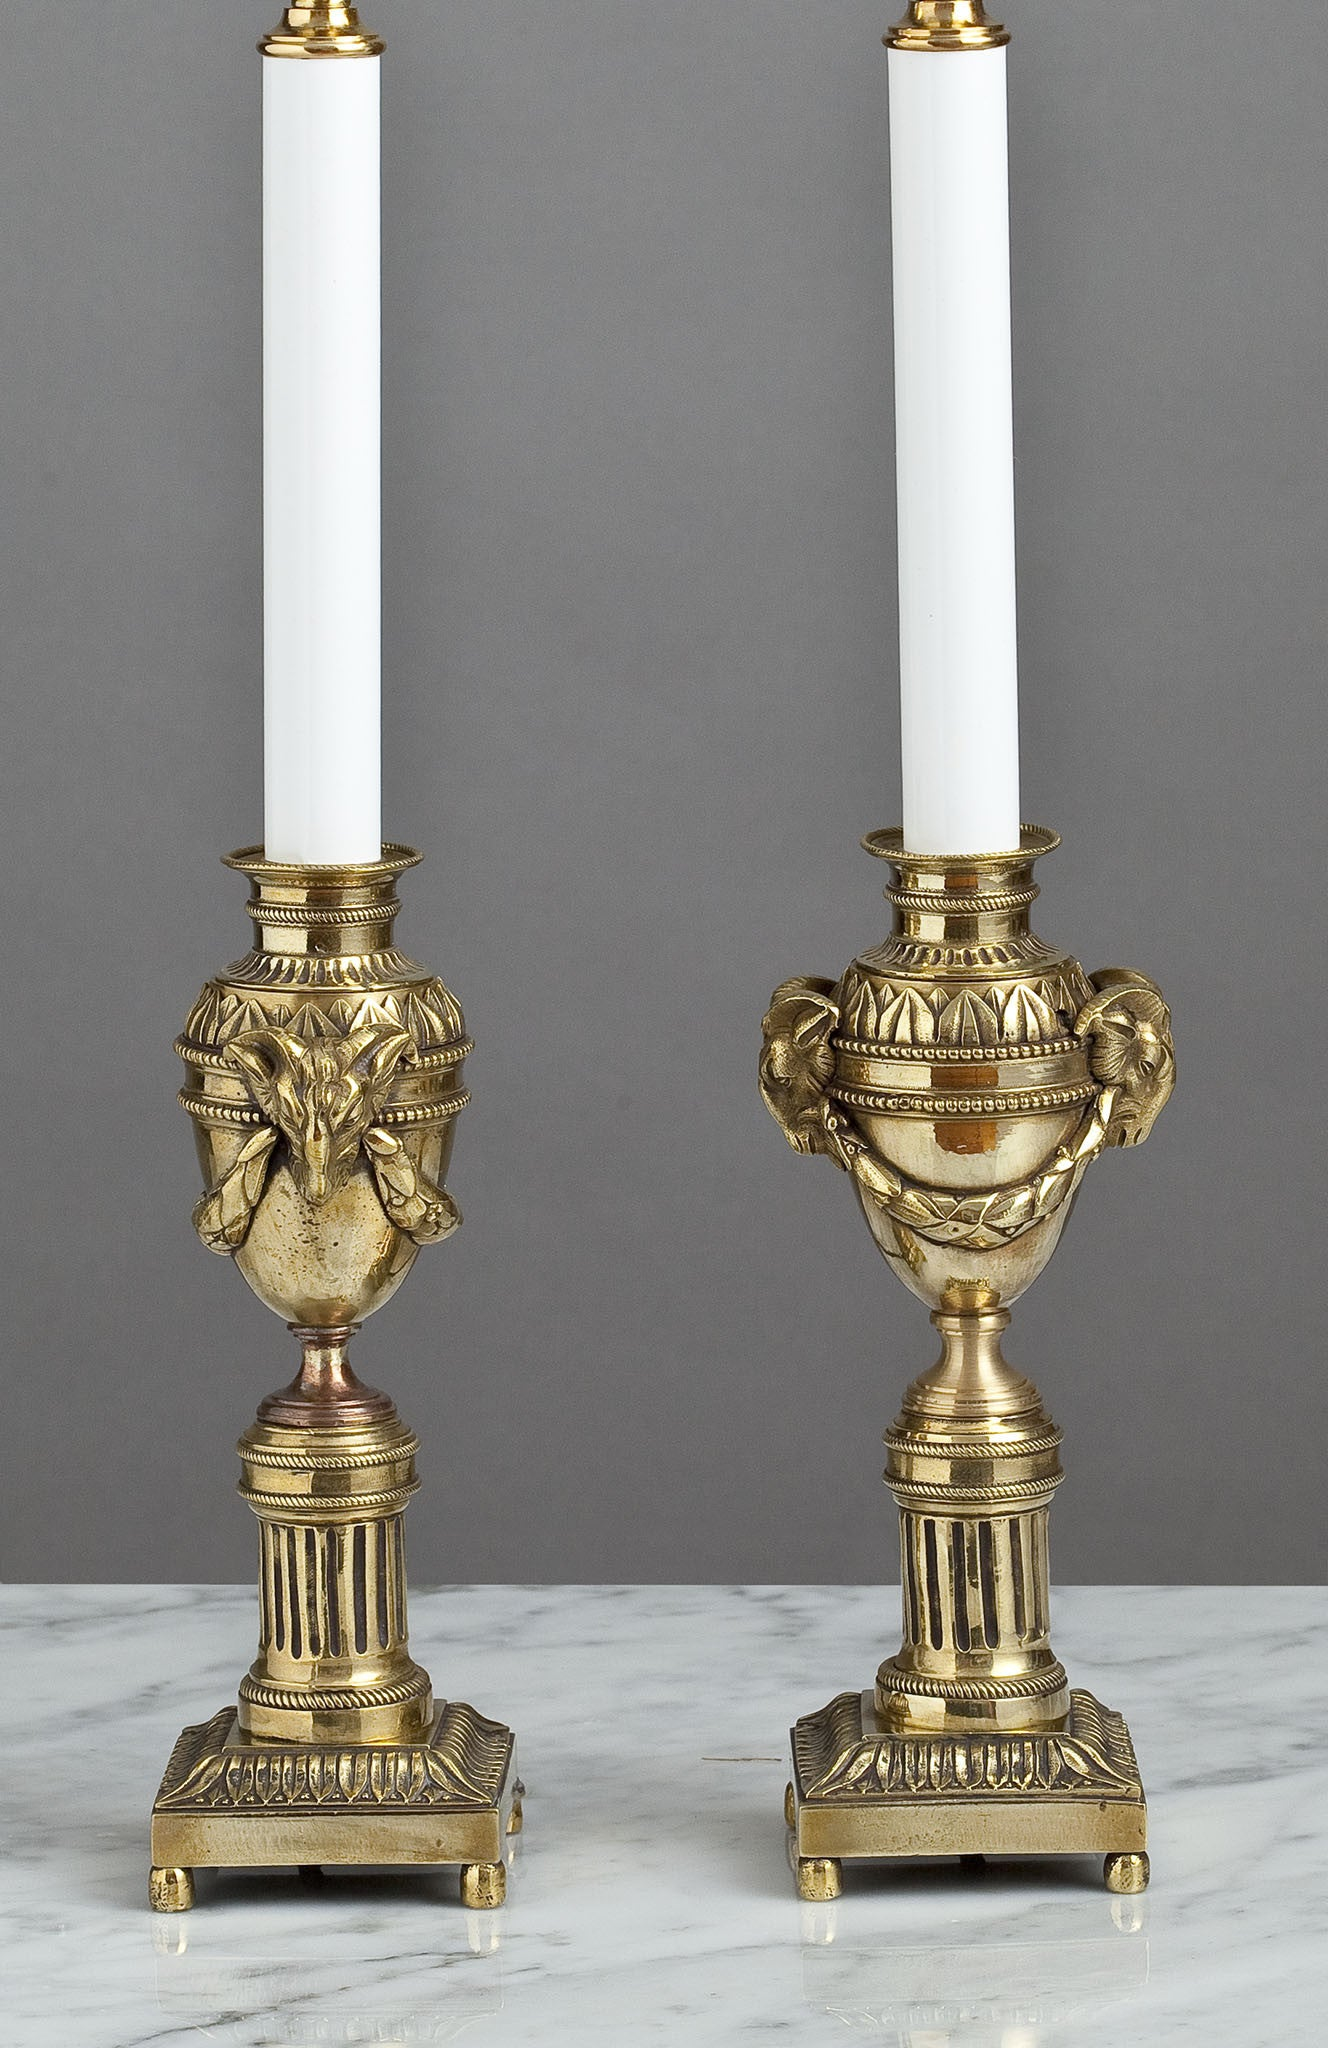 G012  A Fine Pair of French 19th Century Candle Stick Accent Lamps - Circa 1860